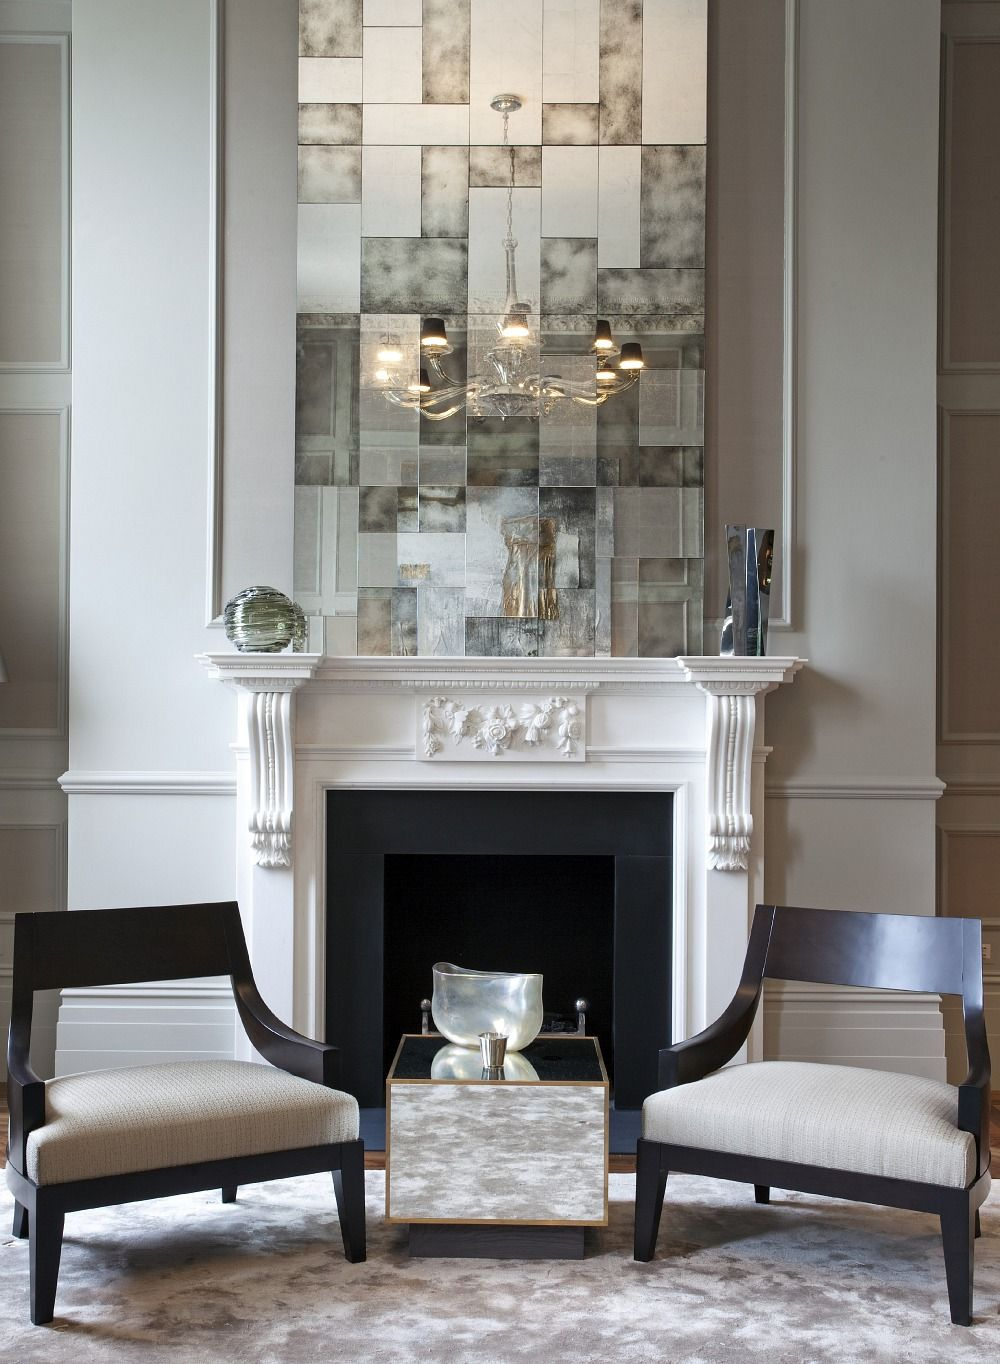 Fireplace With Antique Mirror Above And Bespoke Furniture